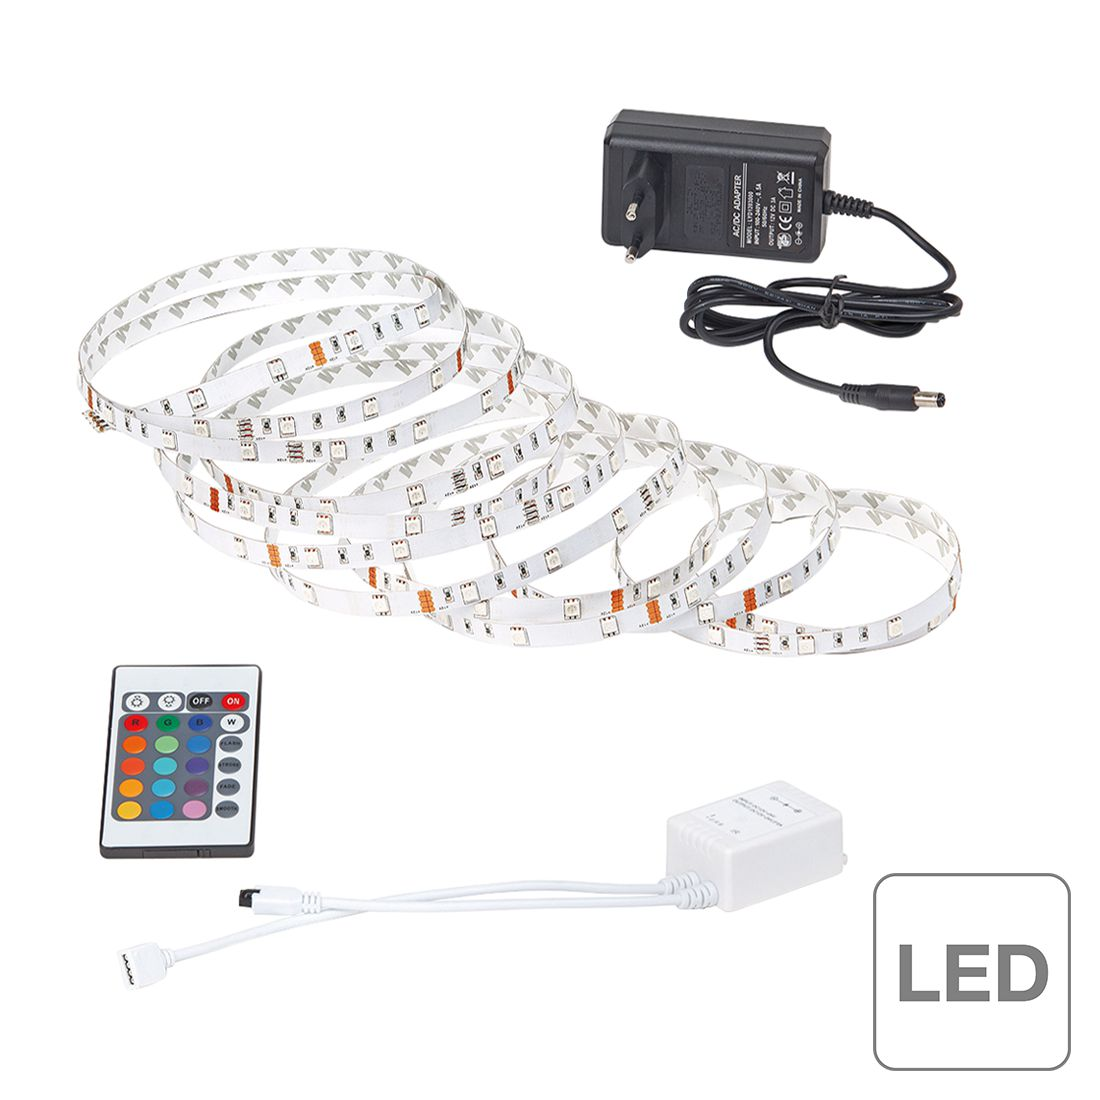 LED-Streifen Light Strip LED ● 5-flammig- Brilliant A+